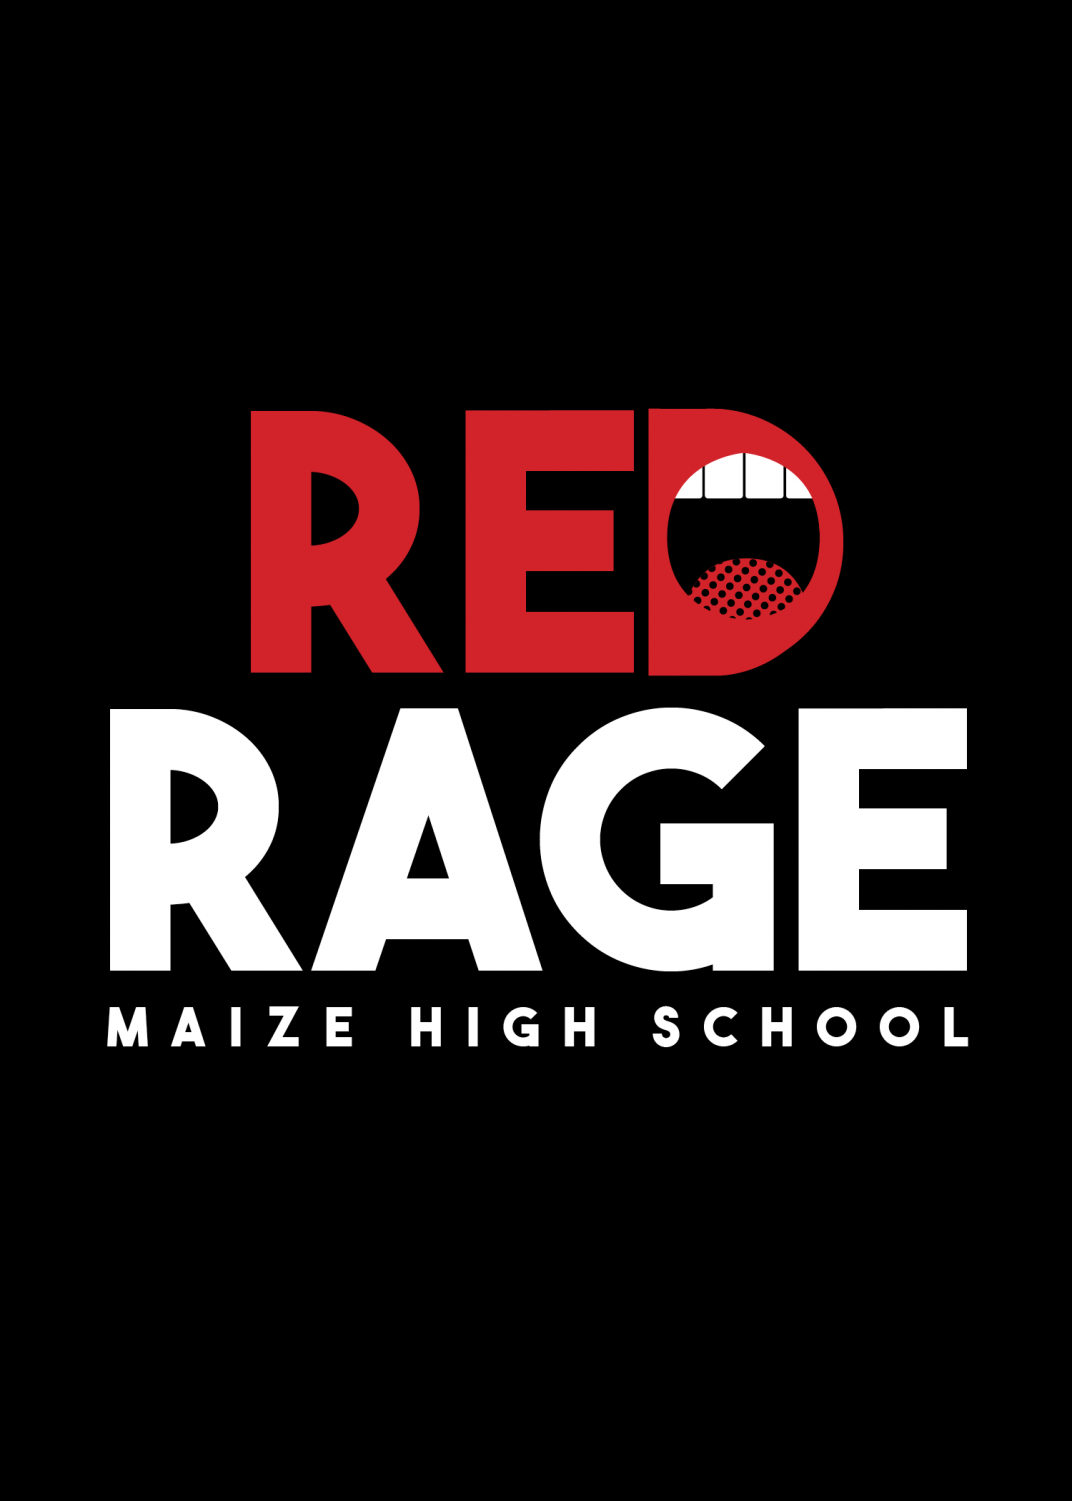 Red Rage is selling members until Aug. 30. Memberships include a t-shirt and admission to all home games.